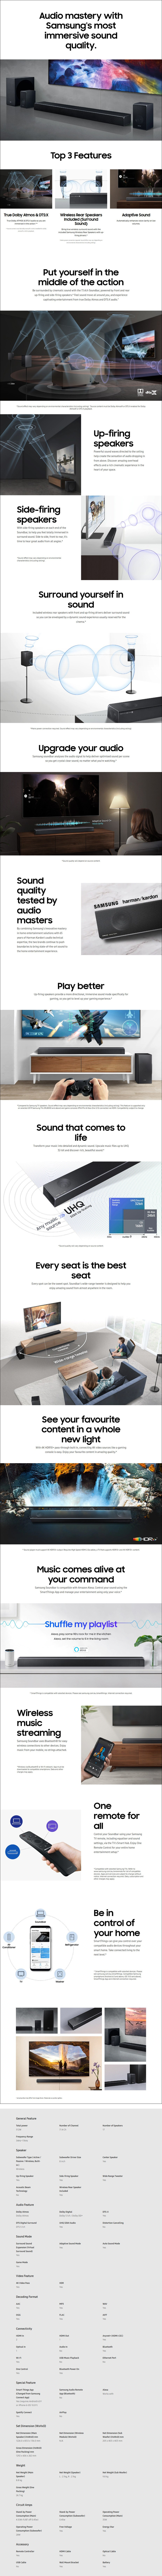 Samsung Series 9 HW-Q90R 7.1.4 Soundbar with Dolby Atmos & DTS:X - Overview 1